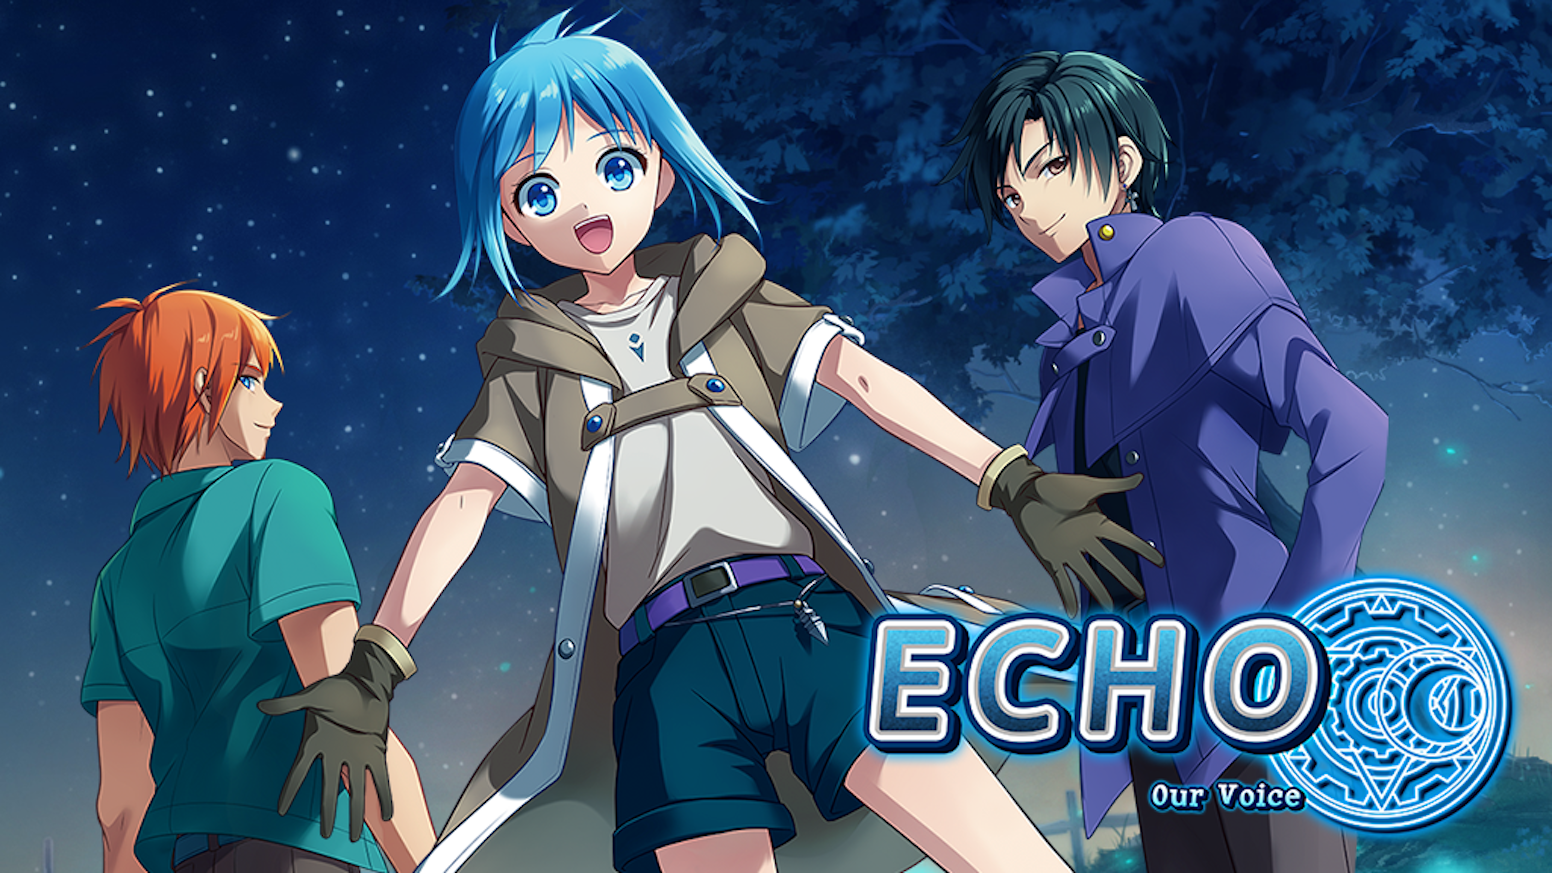 Fantasy Action JRPG <Echo>, Those voices come from you and I.